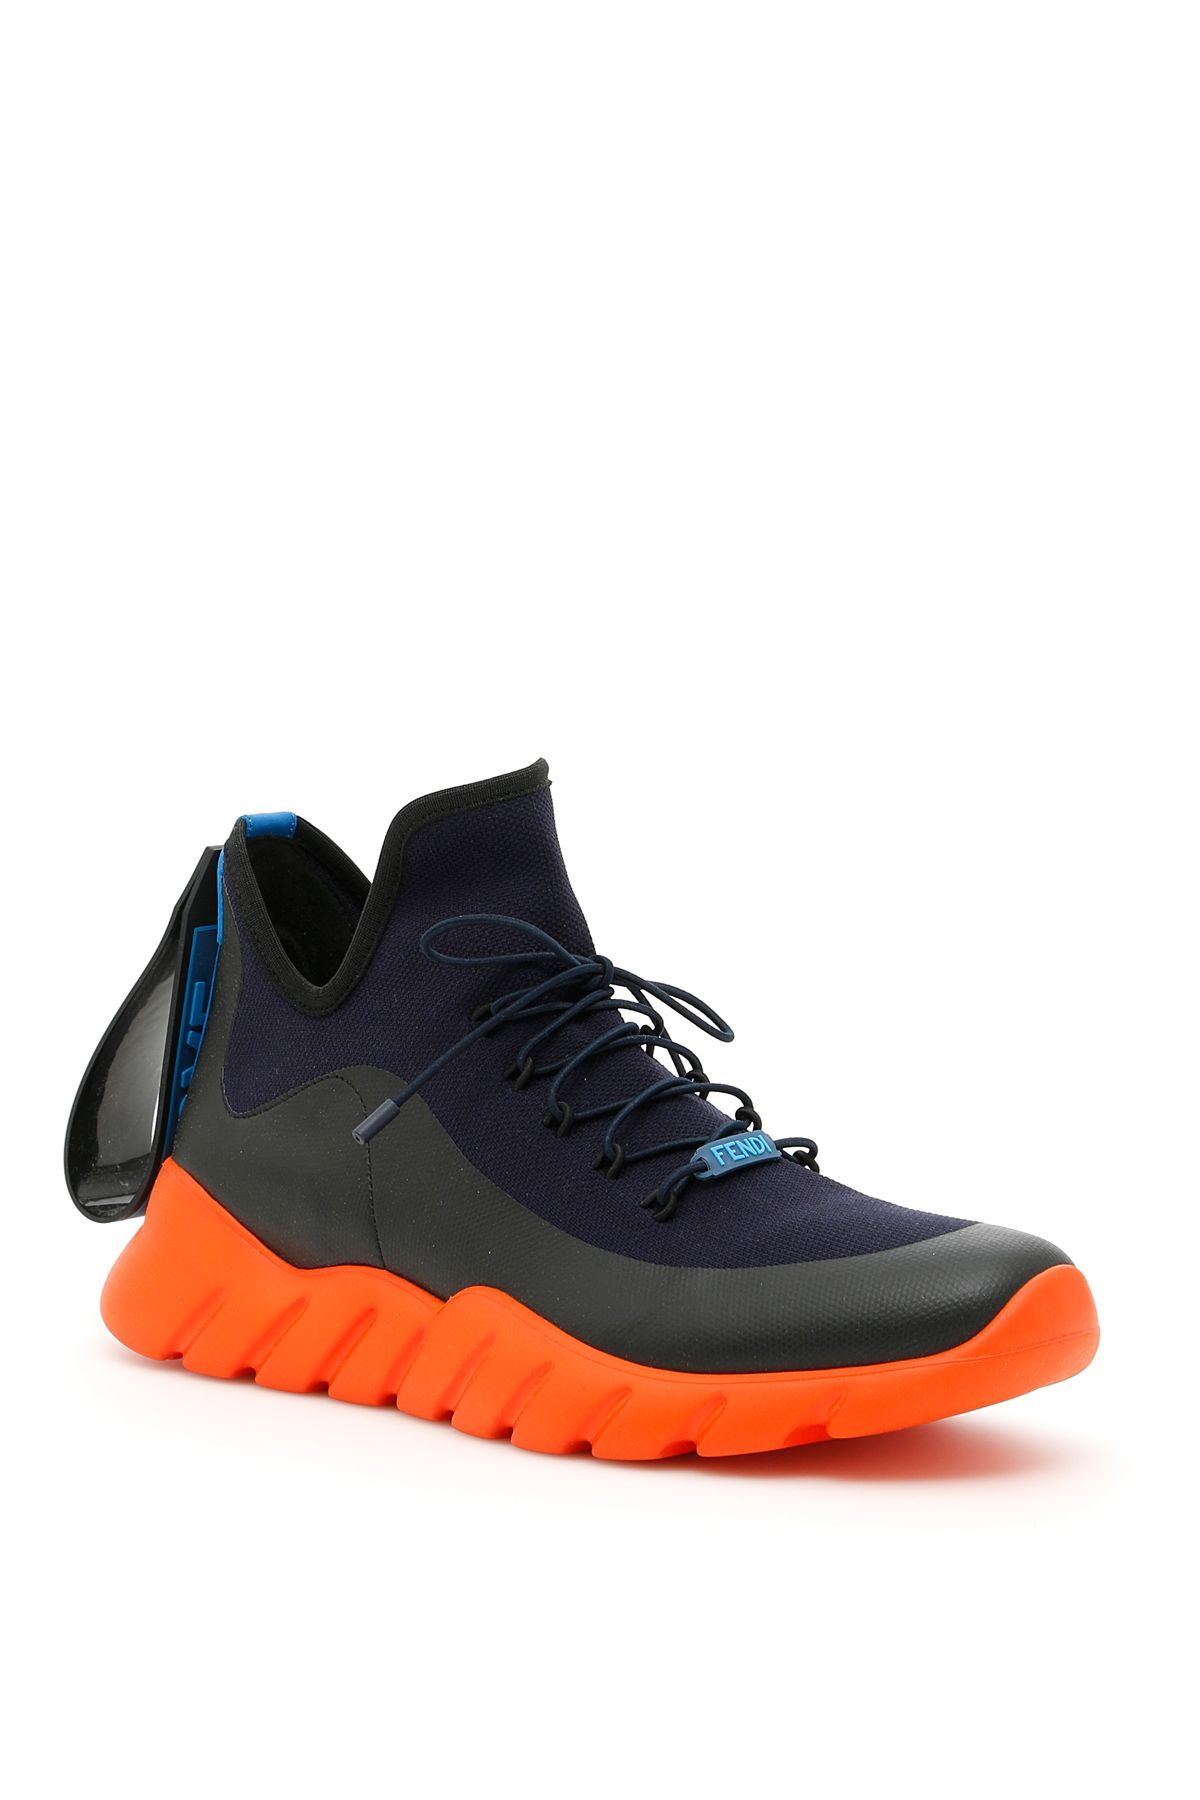 FENDI KNIT SNEAKERS WITH RUBBER FILM